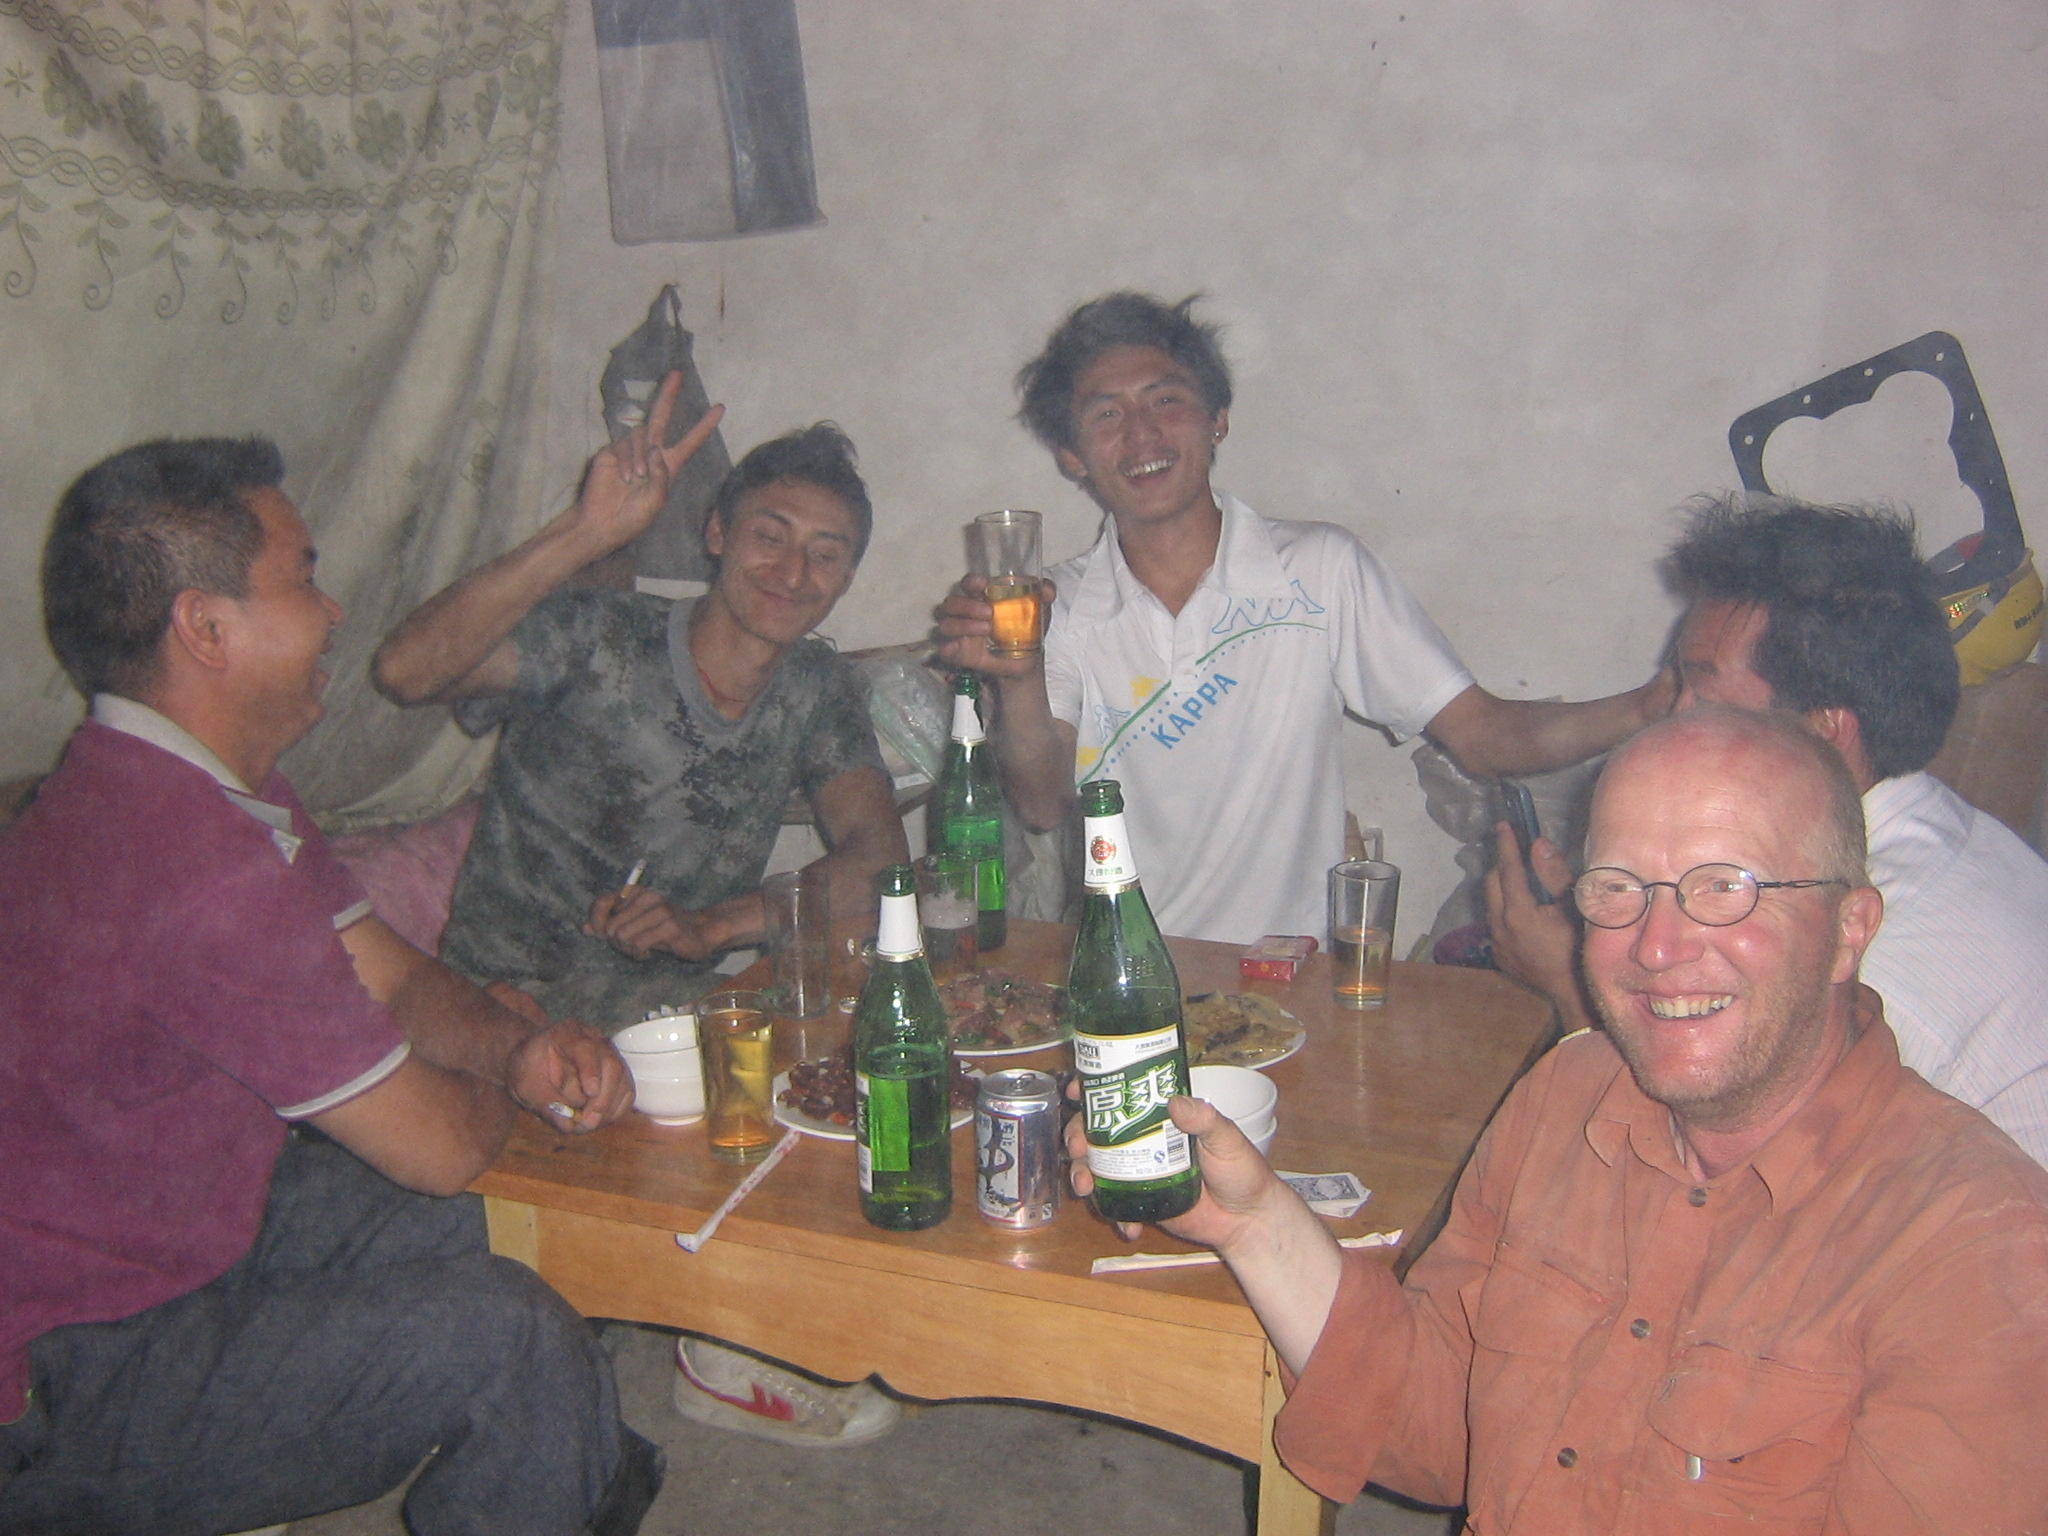 Drinking games with migrant workers